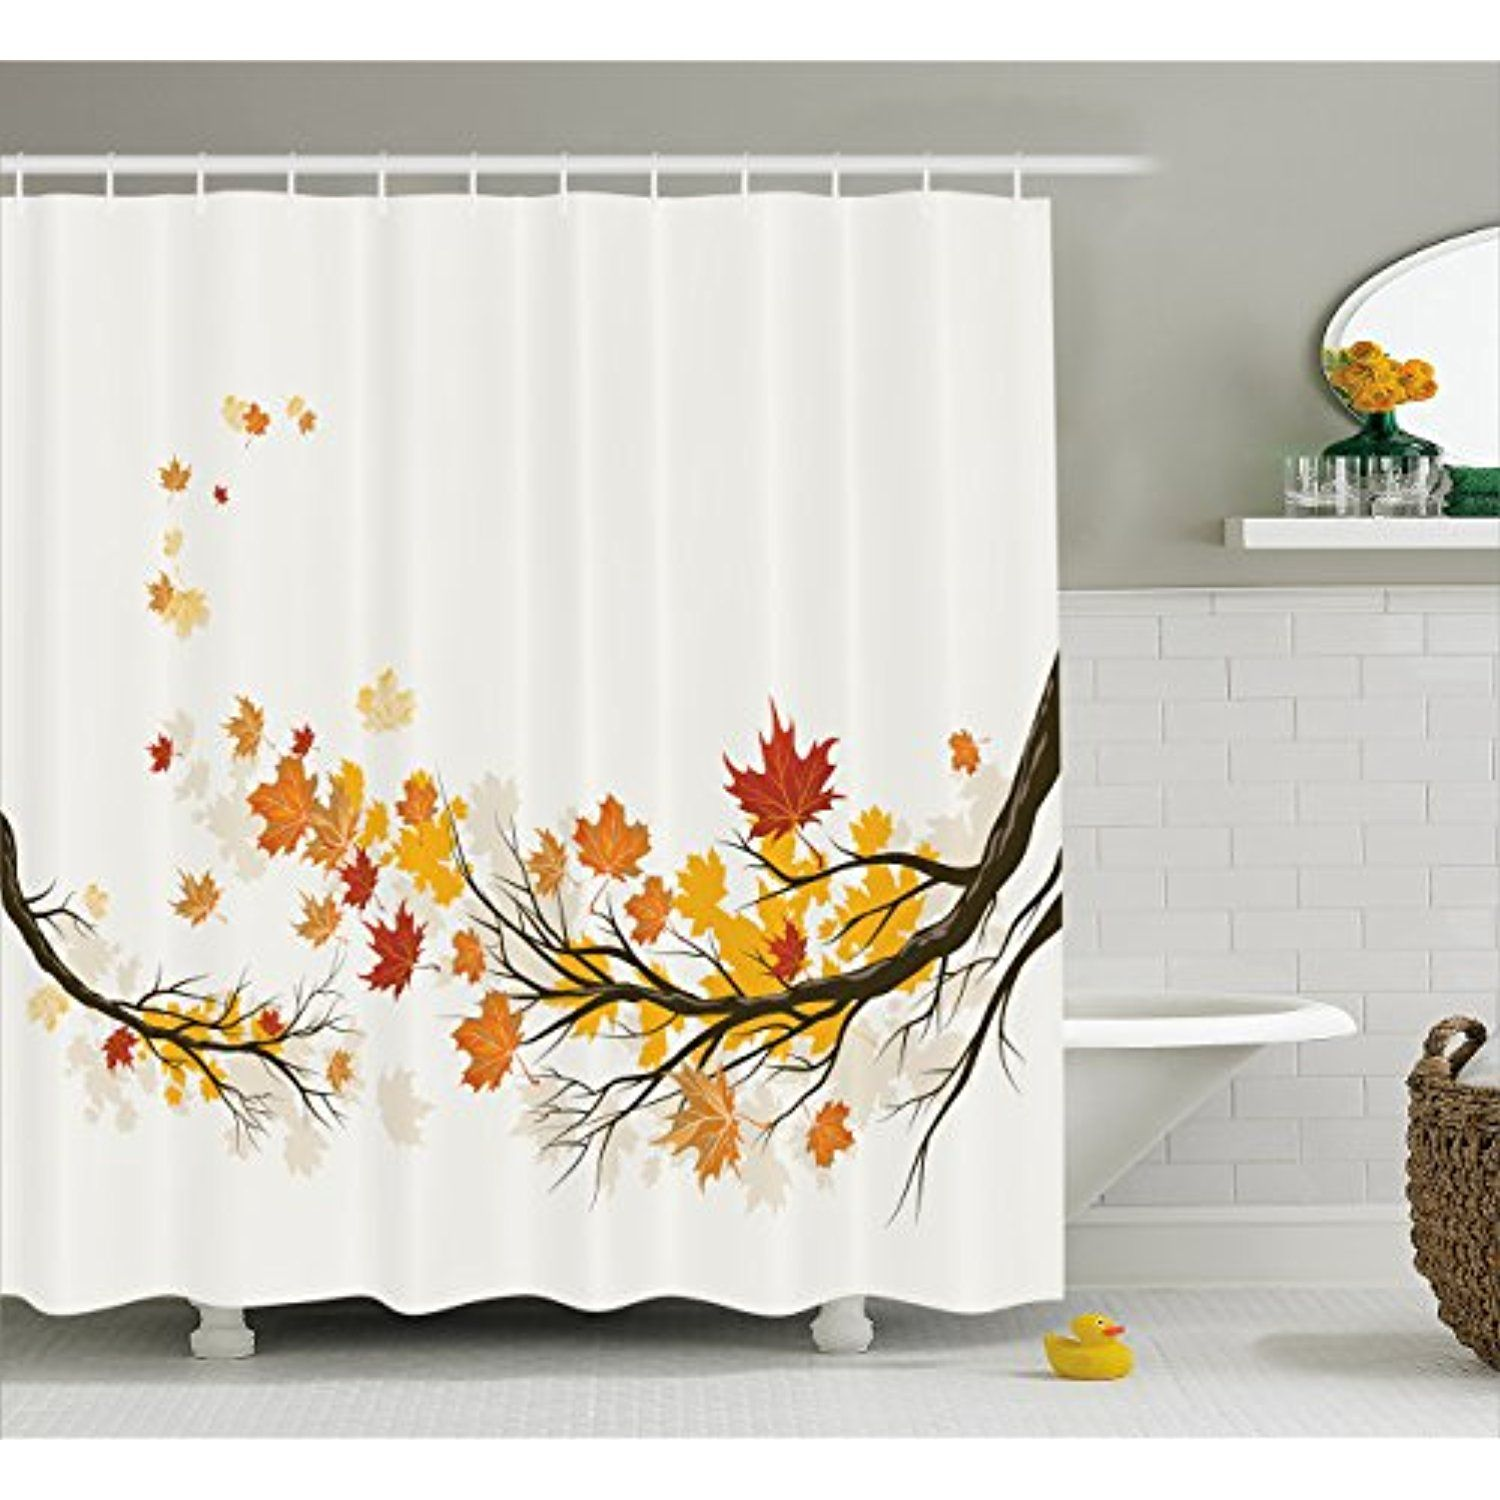 Fall Shower Curtain By Lunarable Seasonal Tree Branches With Pale Colors September Foliage Golden